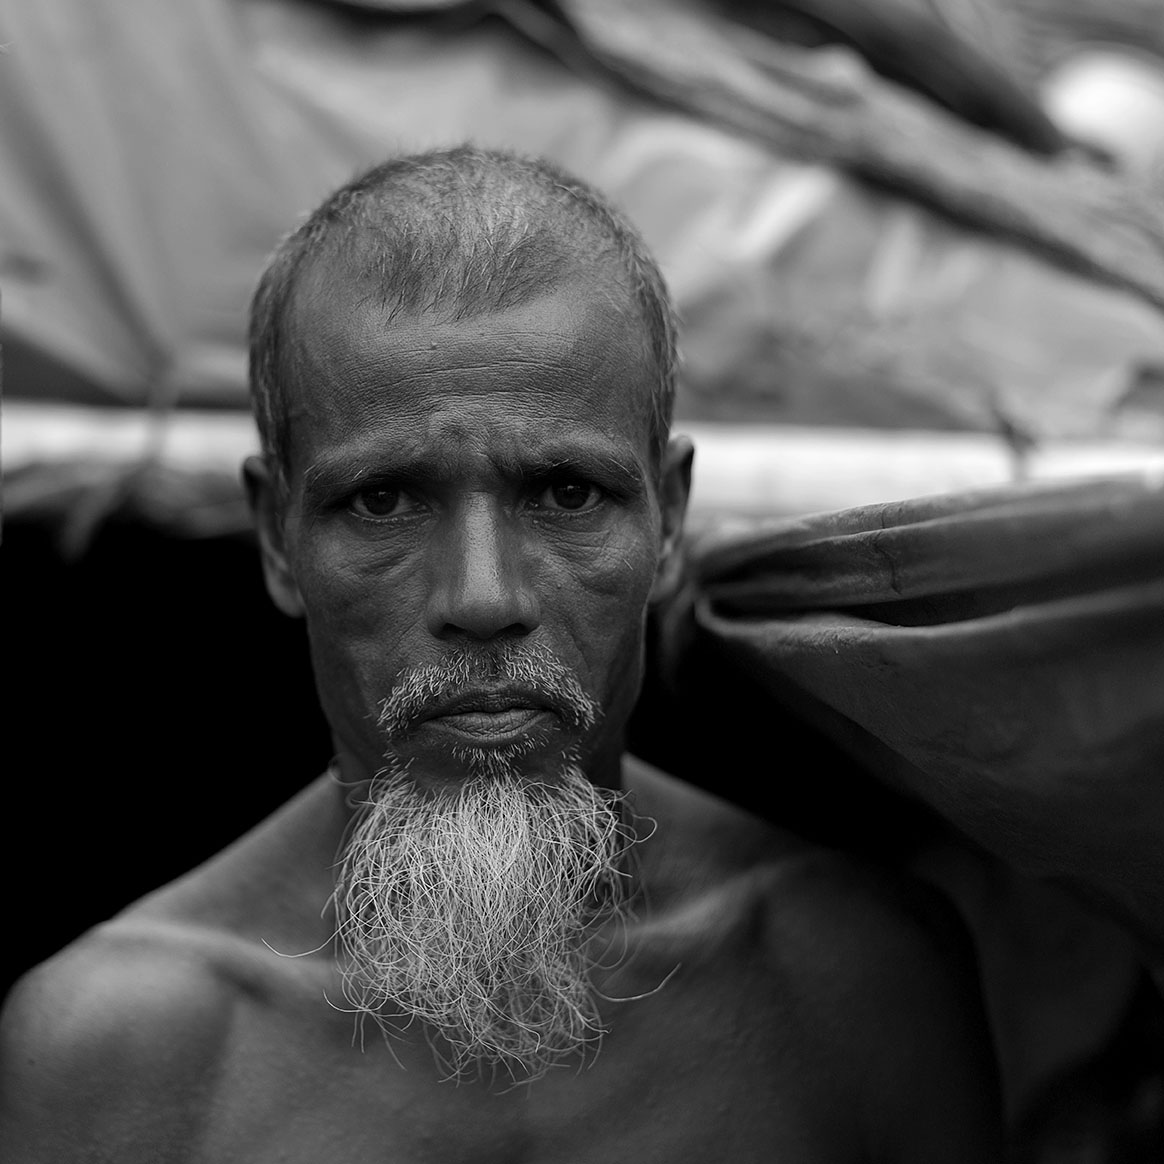 44 Homeless Bangladesh